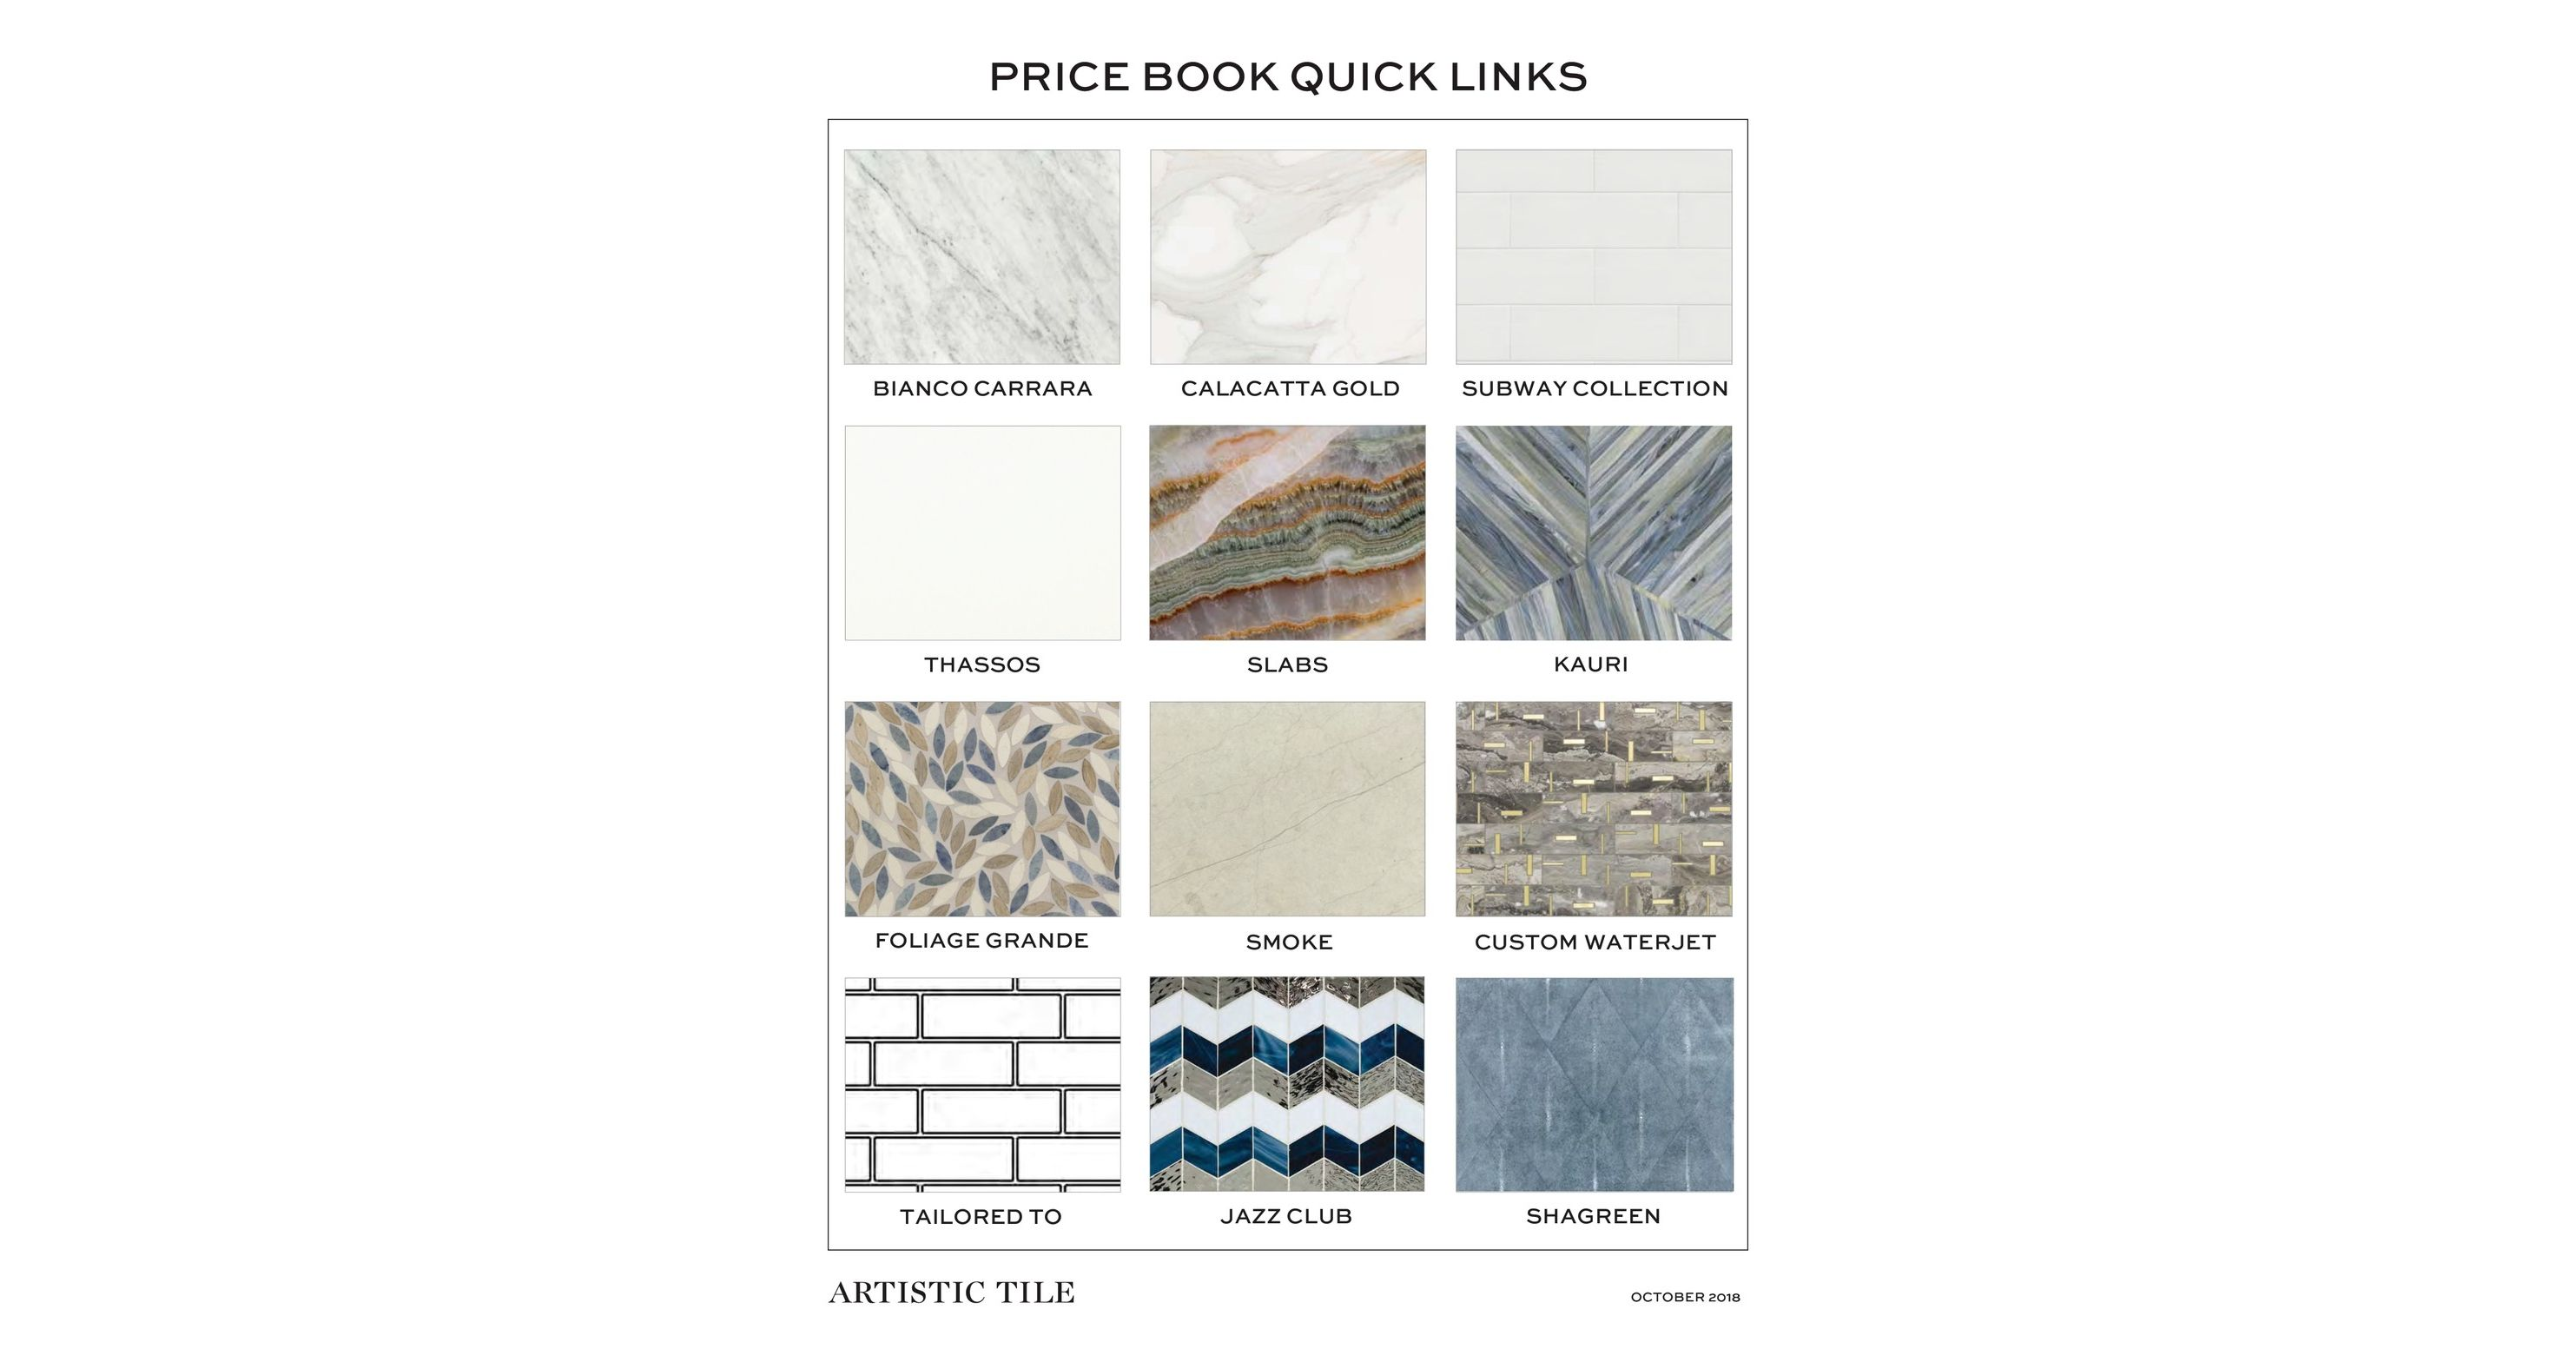 Price Book - Artistic tile price list